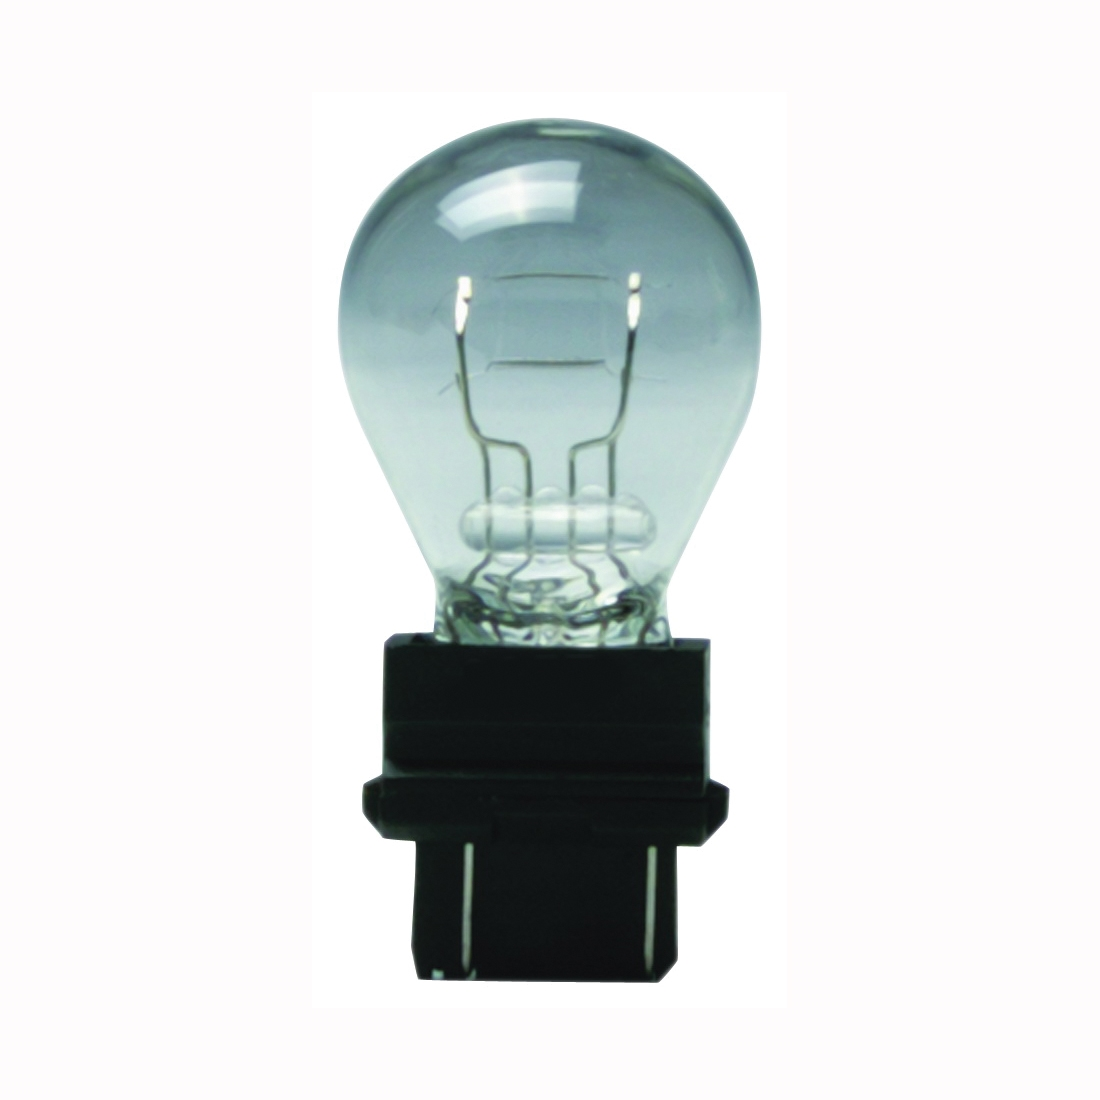 Picture of EIKO 3157-BP Lamp, 12.8/14 V, S8 Lamp, Polymer Wedge Base